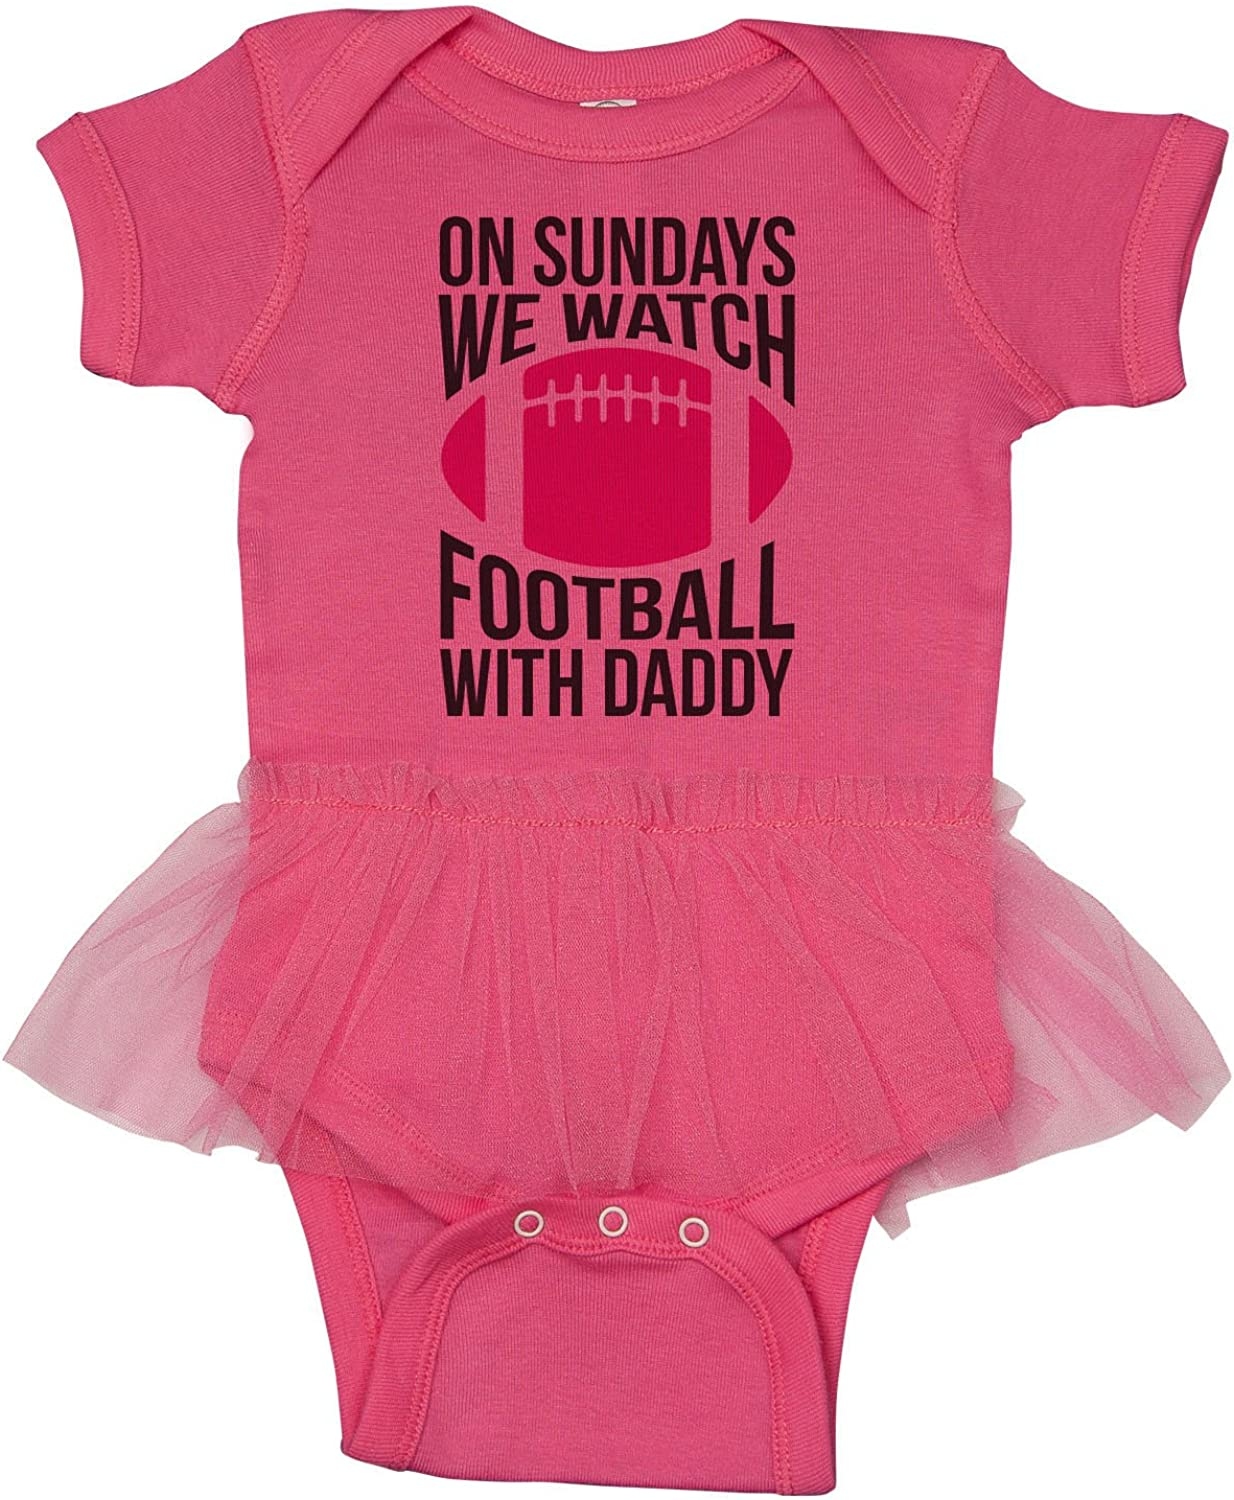 Sundays are for Football with Daddy Baby Girl Football outfit Saturdays are for Football with Daddy newborn football outfit